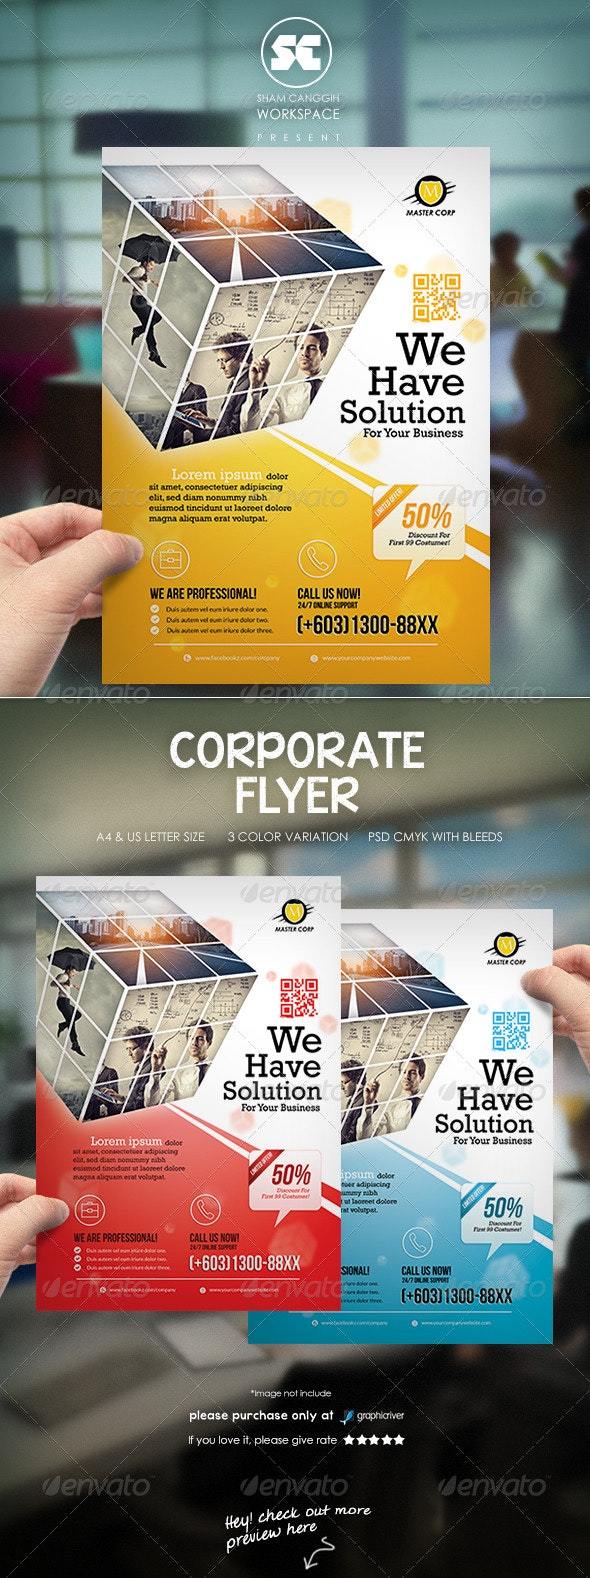 Clean Corporate Flyer / Magazine Ads - Corporate Flyers